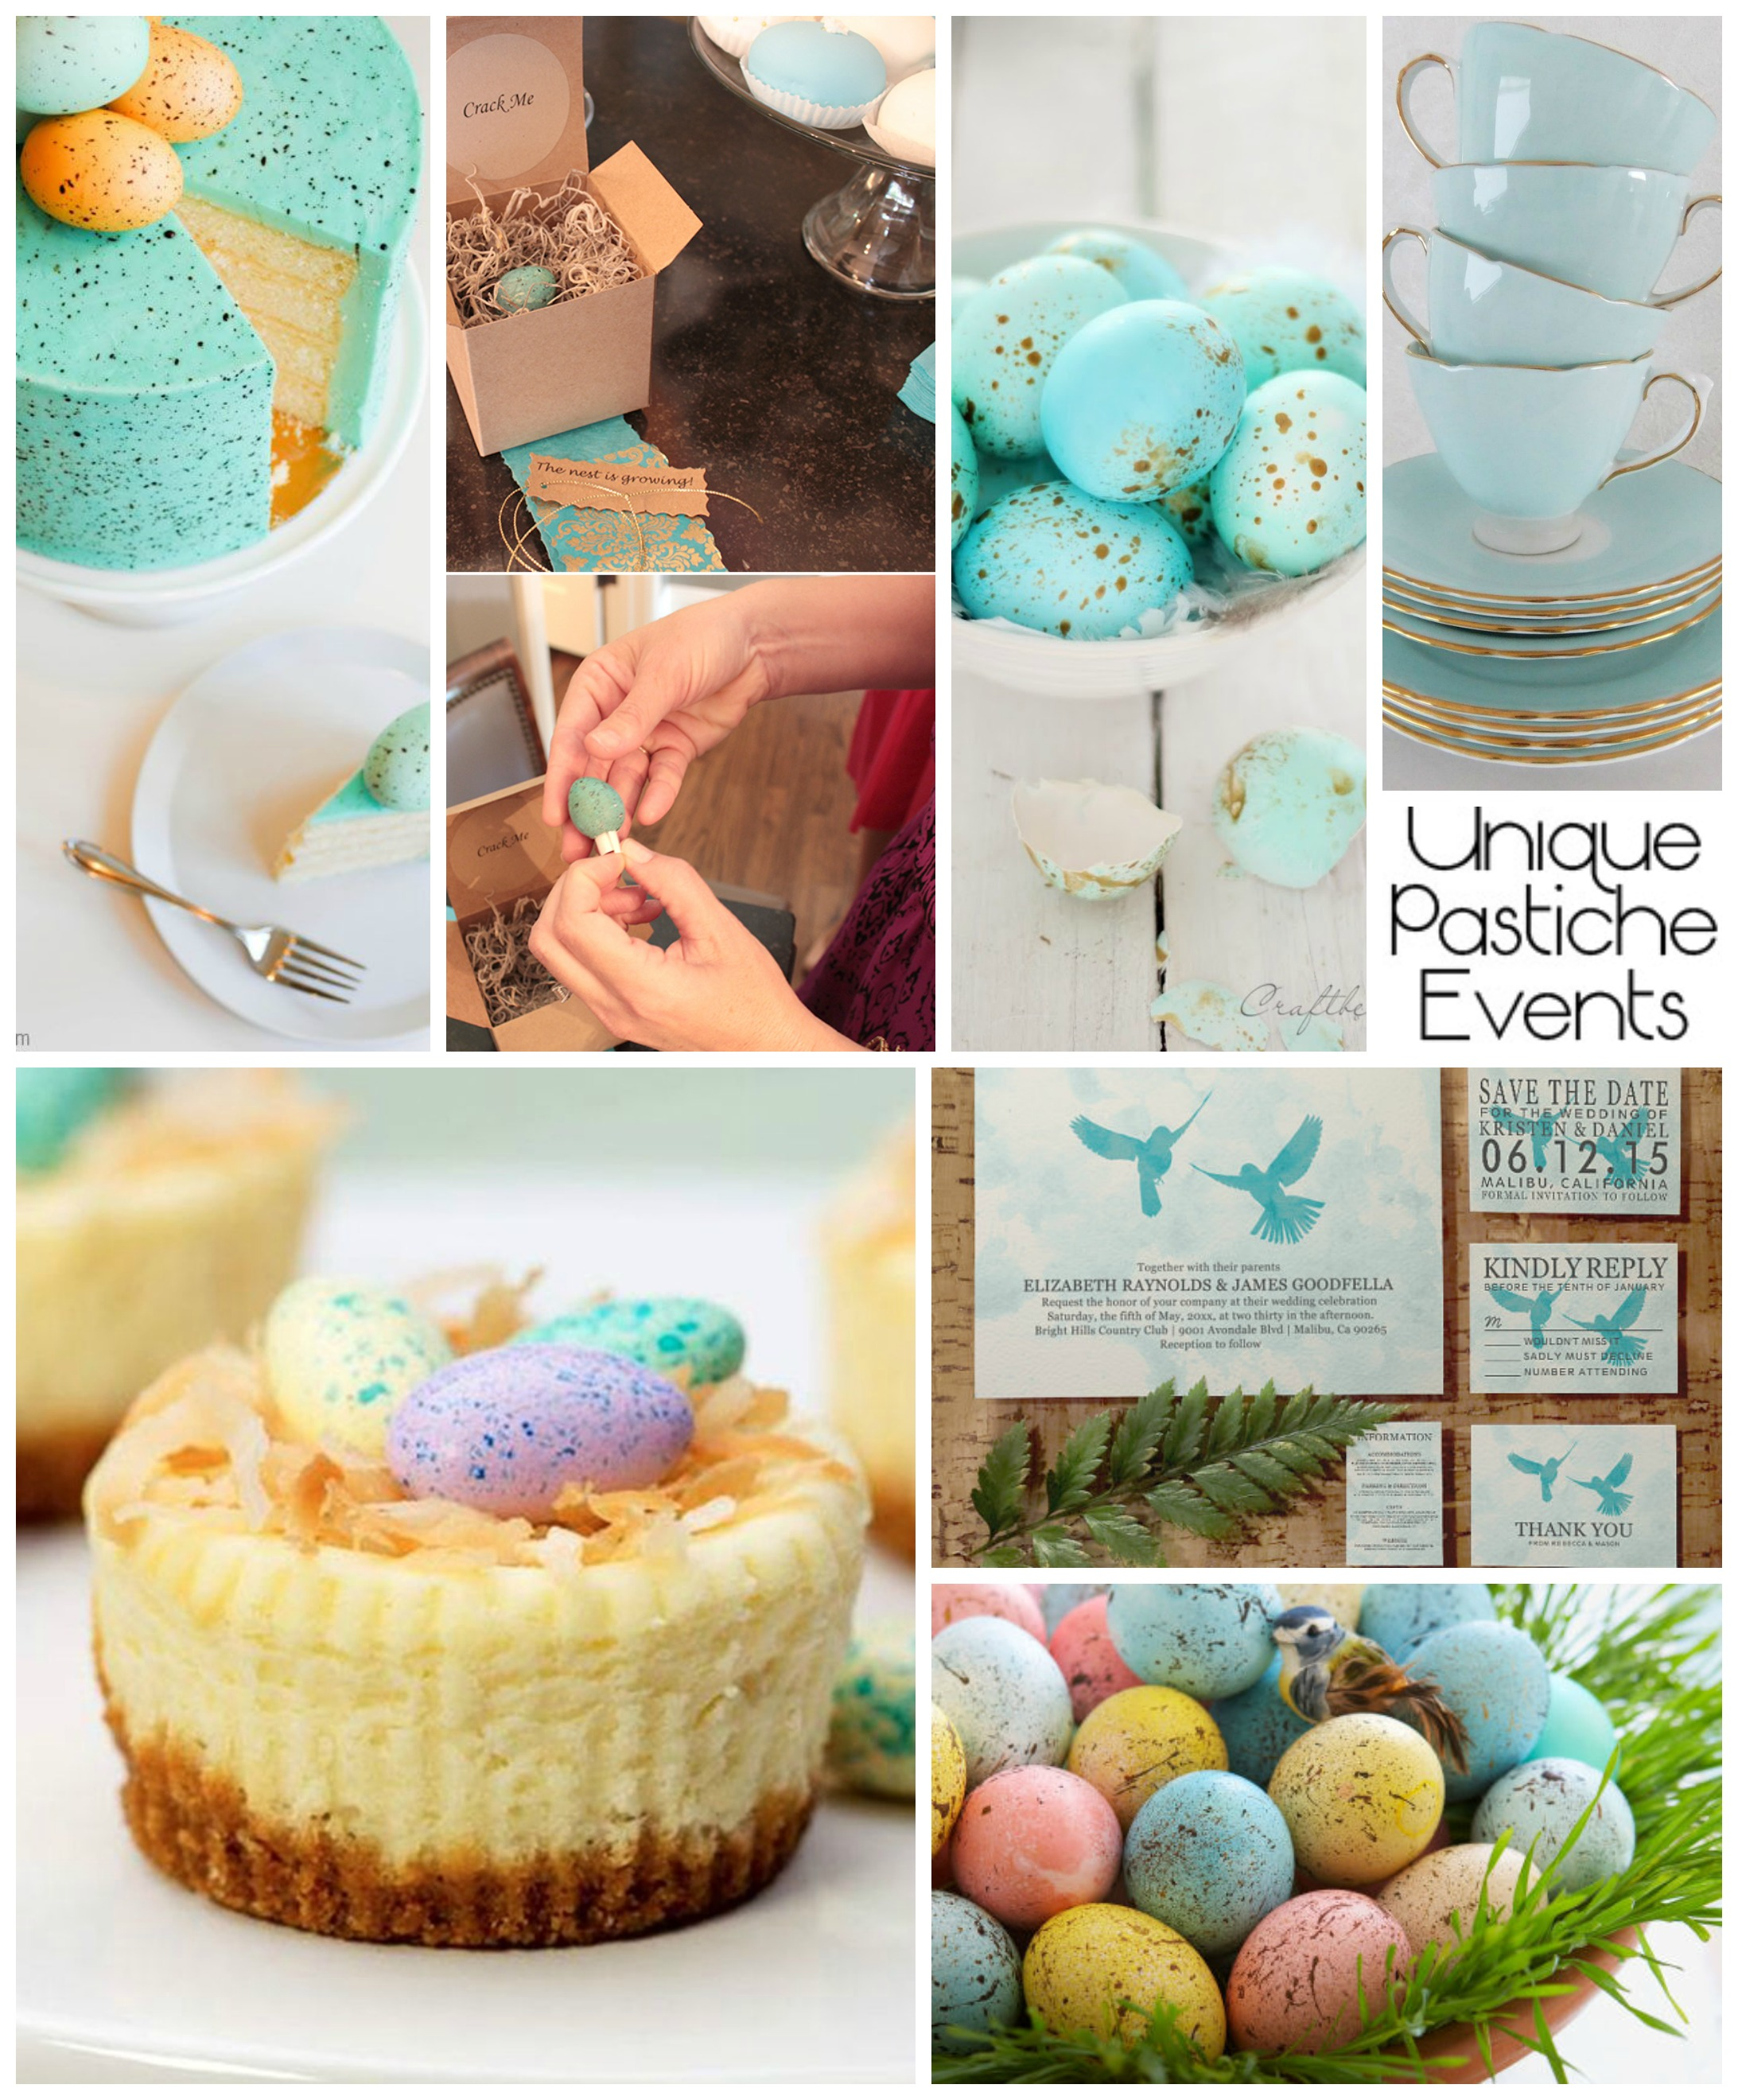 March 2015 unique pastiche events speckled blue egg spring engagement party ideas solutioingenieria Gallery